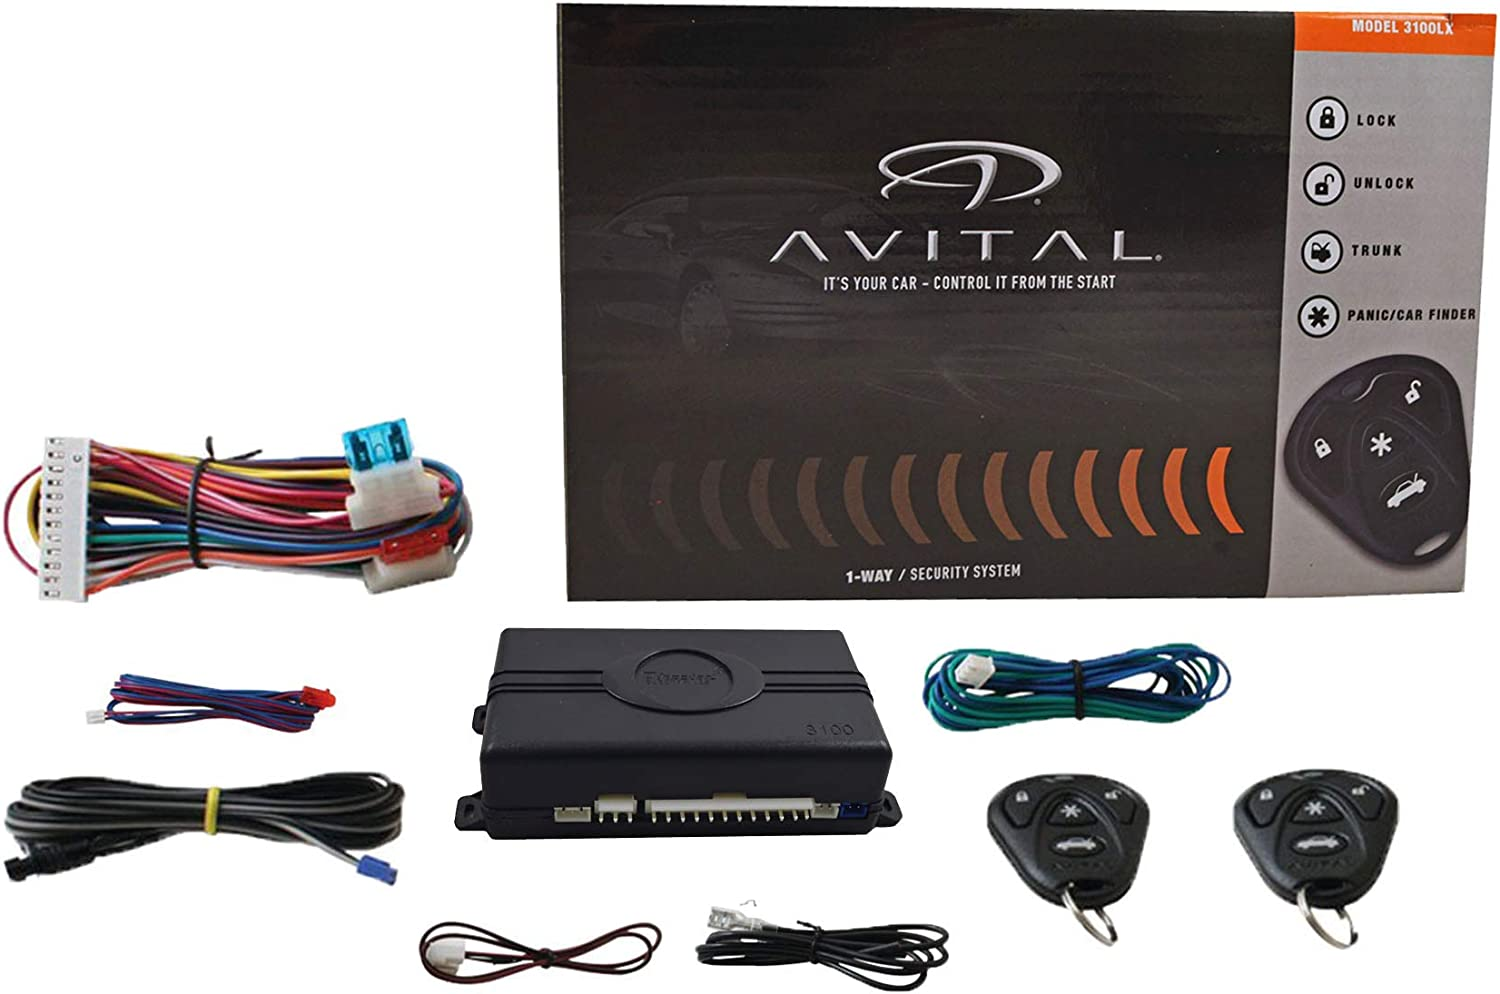 AVITAL 3100LX 3 CHANNEL CAR ALARM SYSTEM W// 2 REMOTES AND KEYLESS ENTRY